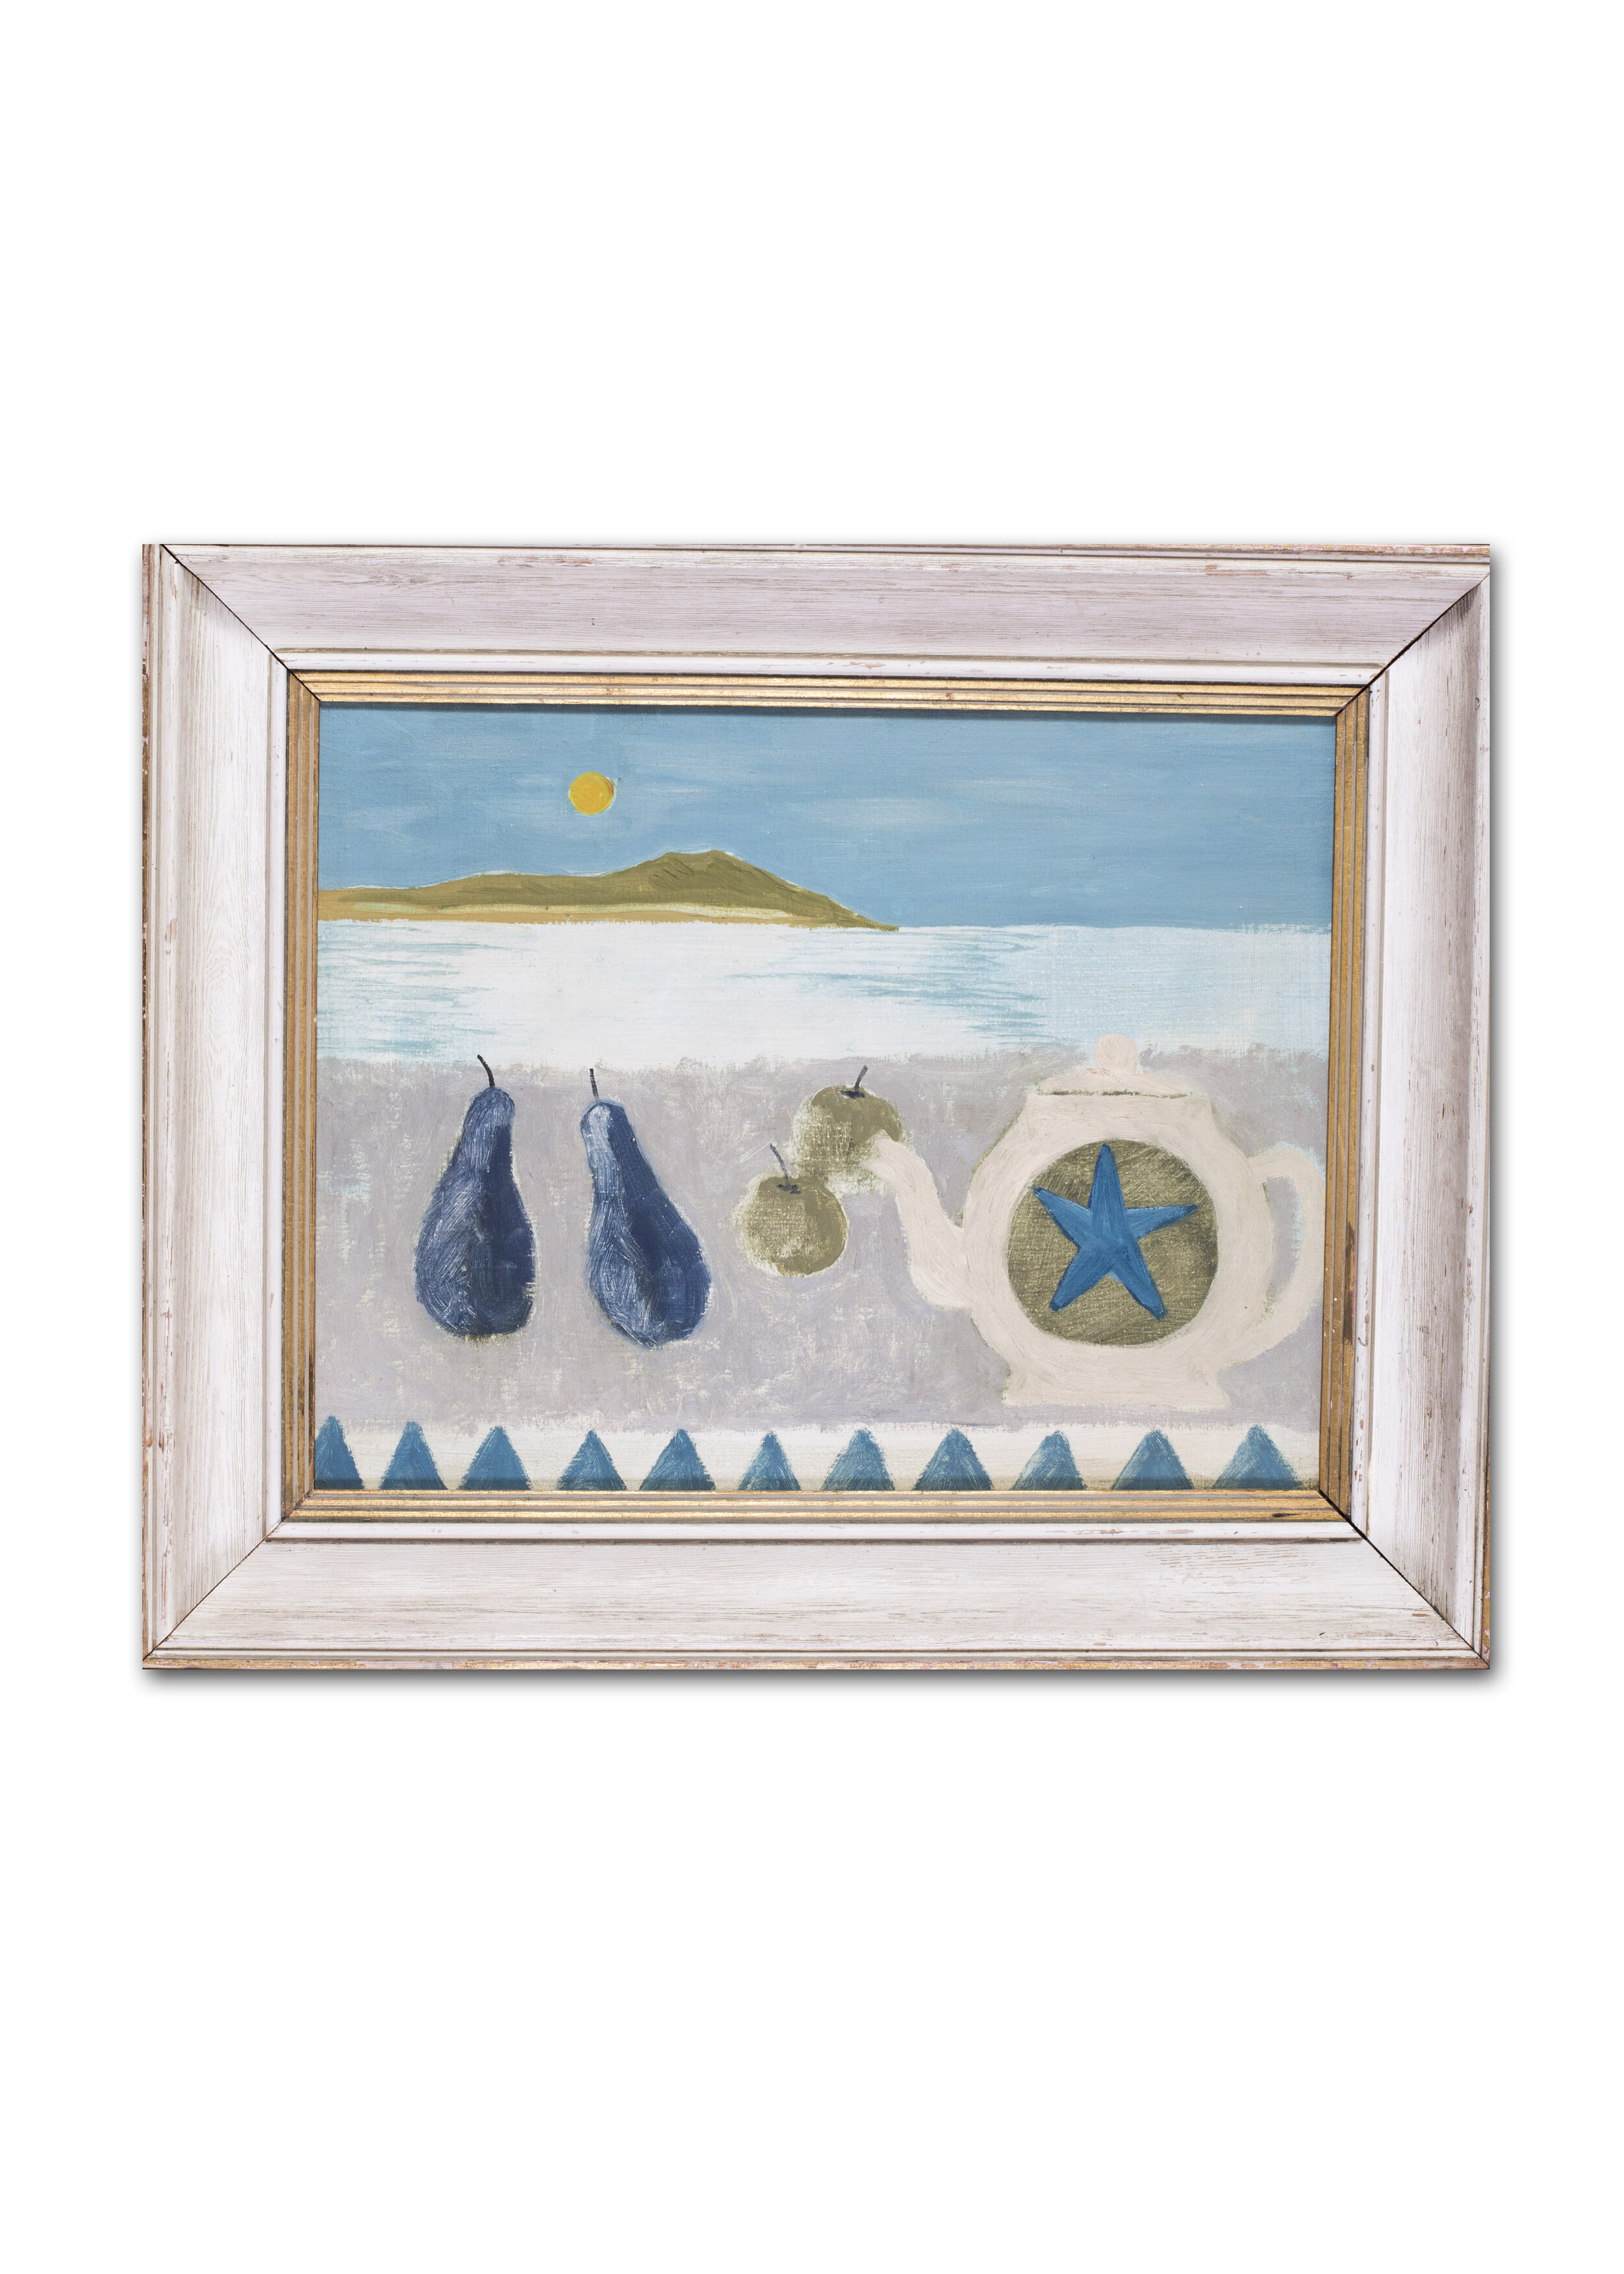 Circle of Mary Fedden    Tea, apples and pears    Price: £850